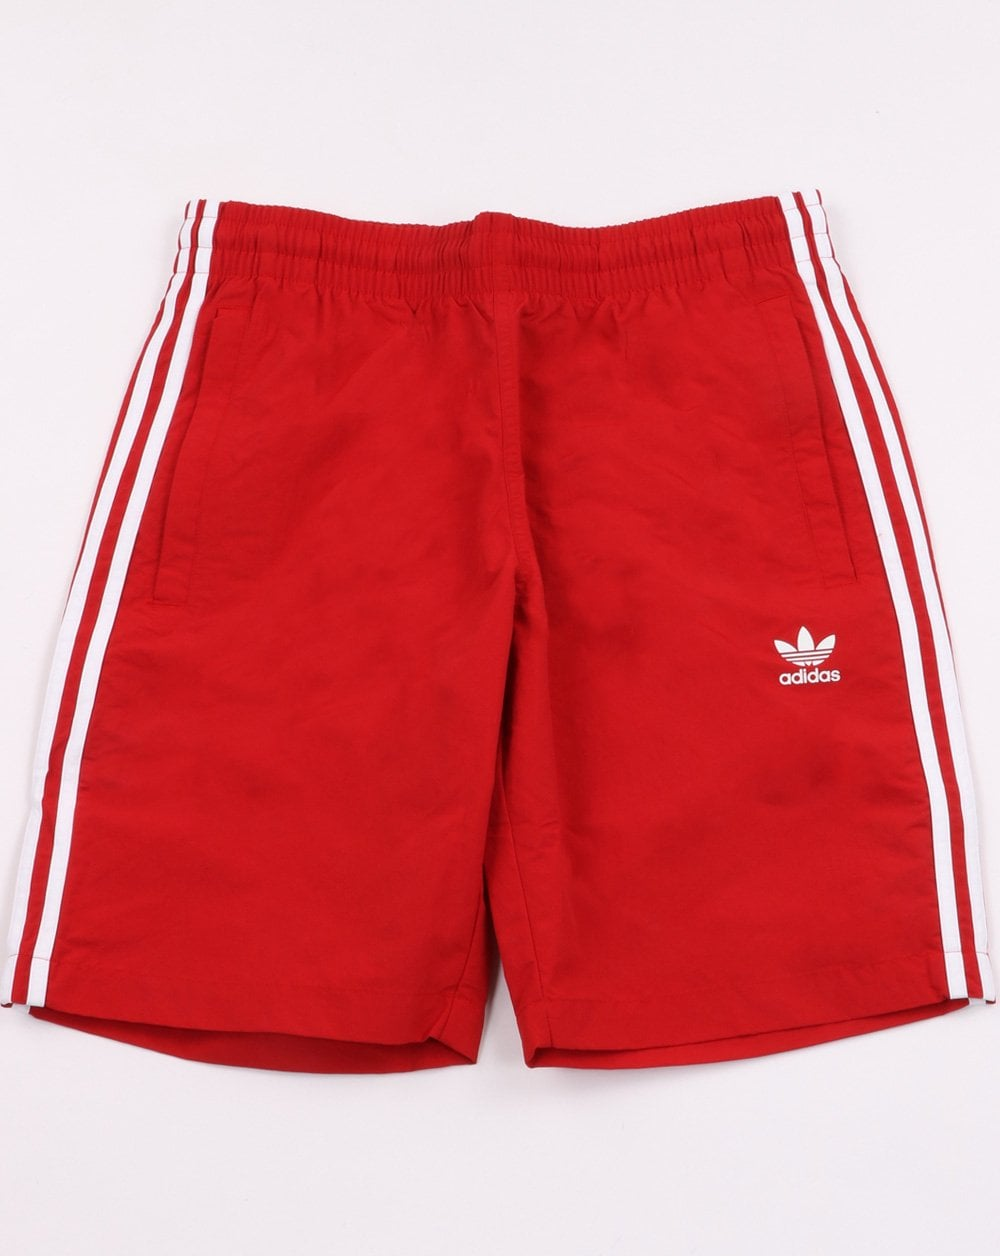 5365a8a3e2 Adidas Originals 3 Stripes Swim Shorts Power Red | 80s casual classics